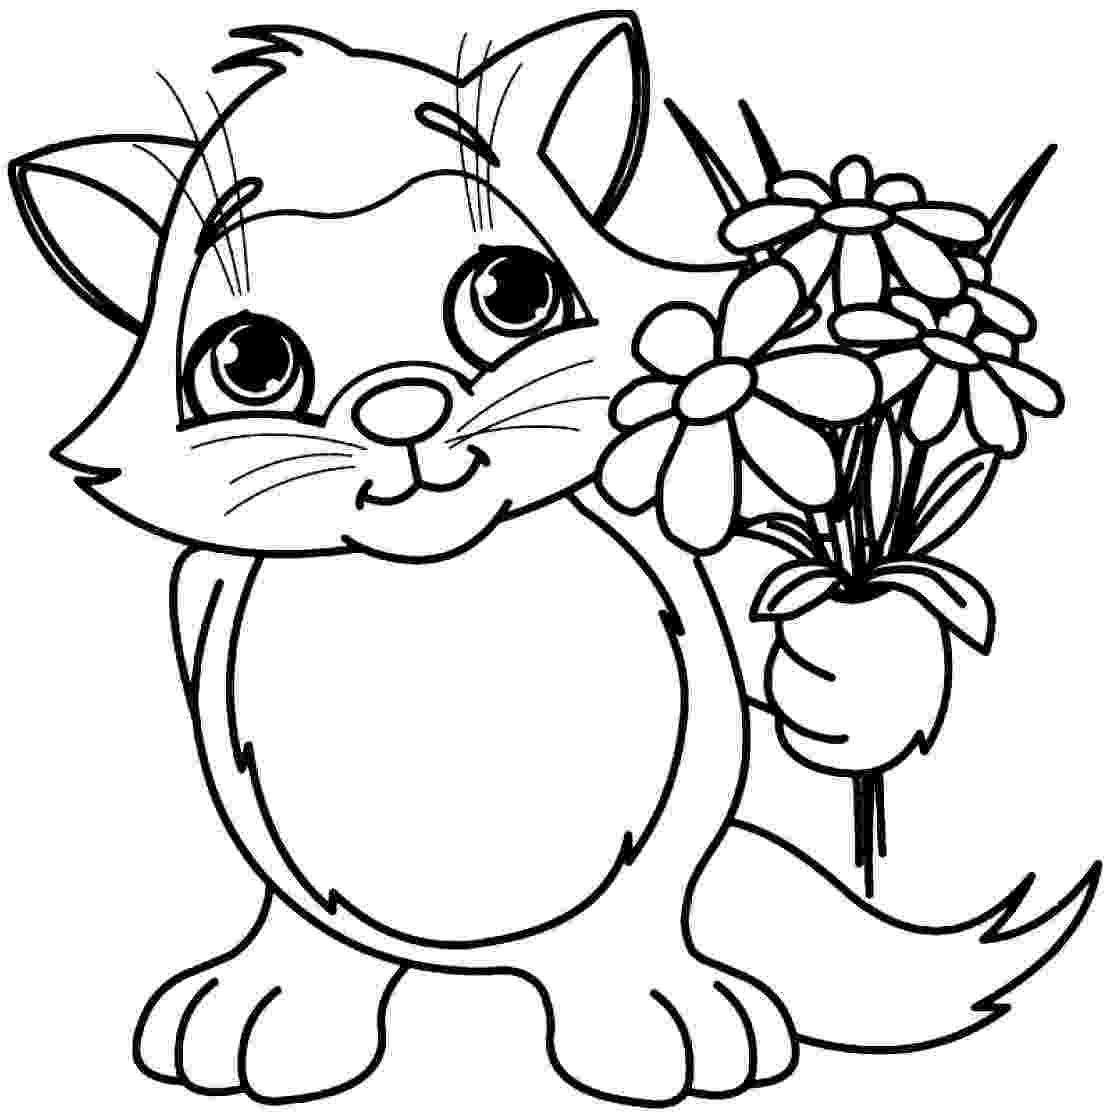 flower colouring pages to print simple flower coloring pages getcoloringpagescom colouring to print flower pages